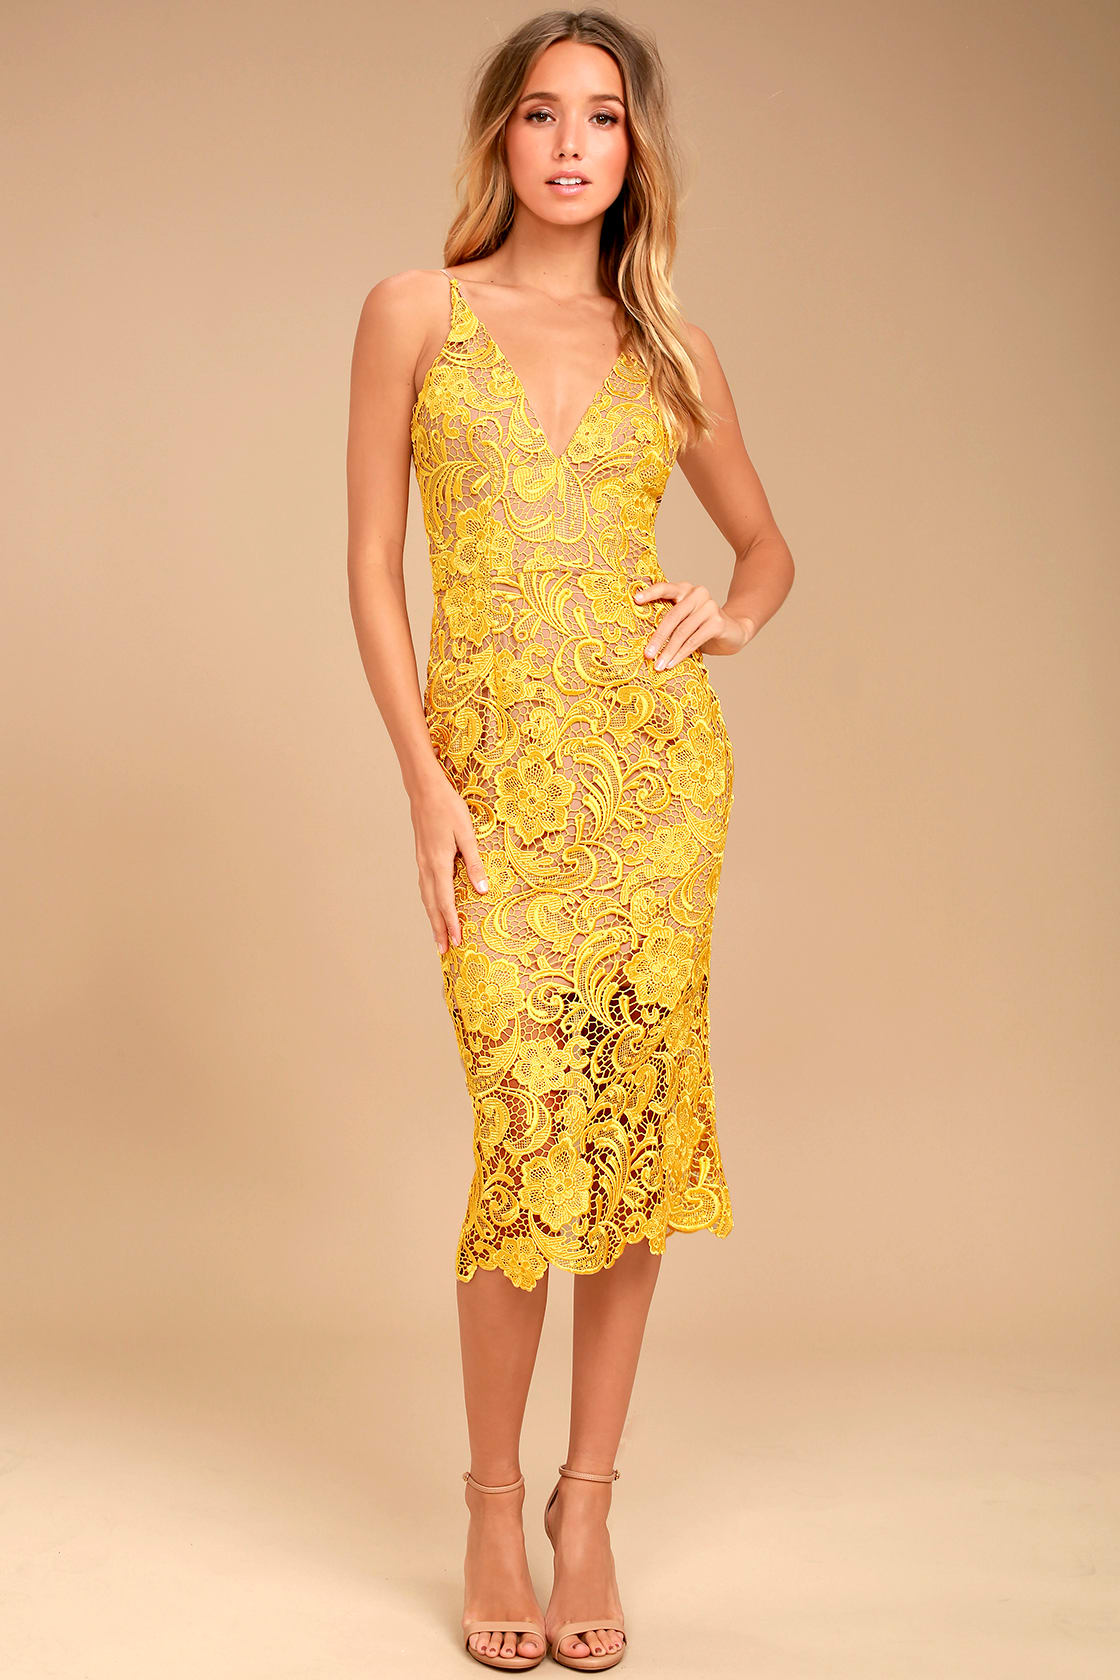 Lulus is the perfect wedding guest dress destination for Yellow dresses for wedding guests